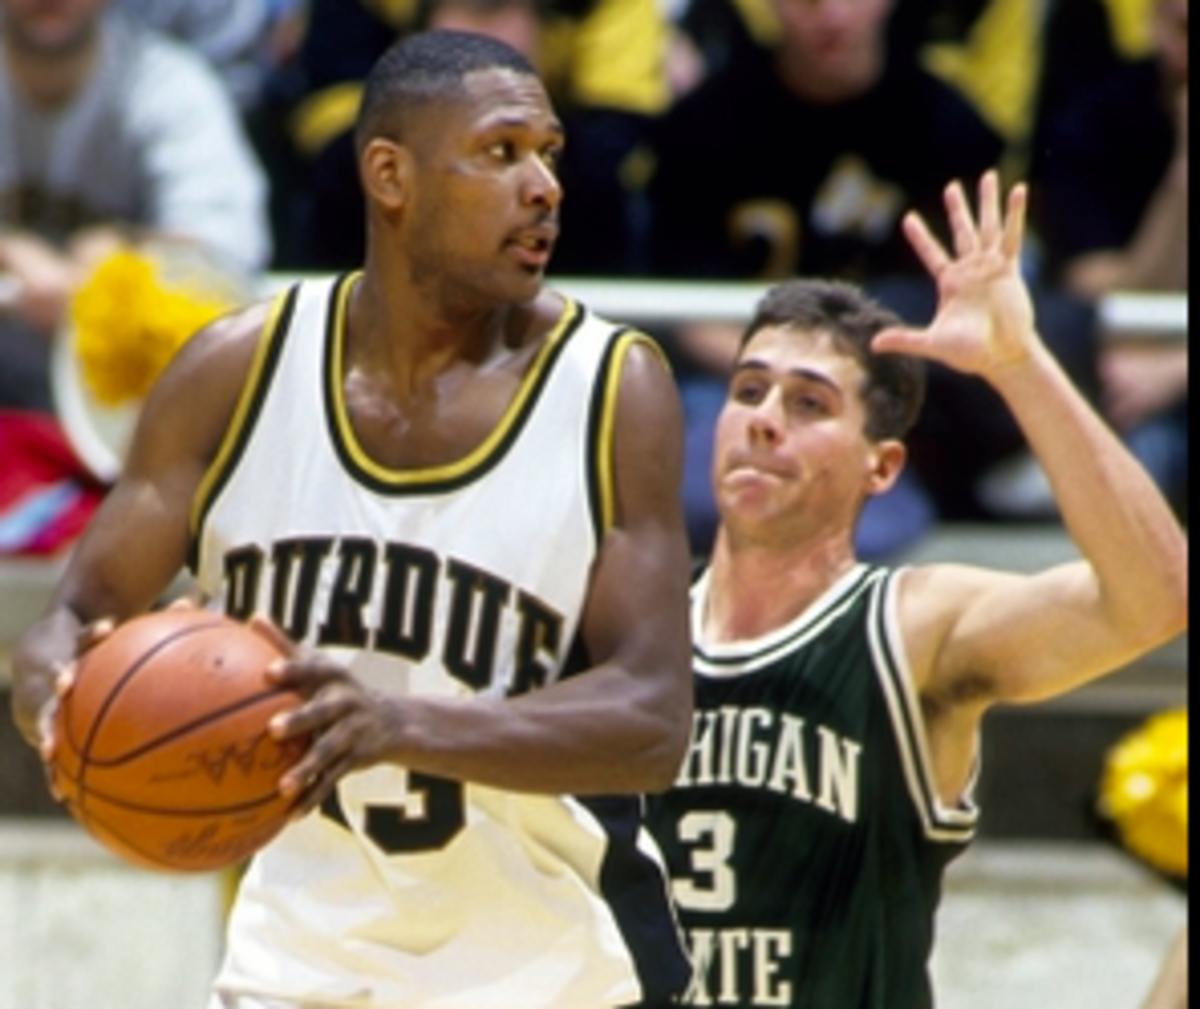 Glenn Robinson scored 1,030 points during the 1993-94 season, the most in Purdue basketball history. (USA Today Sports)